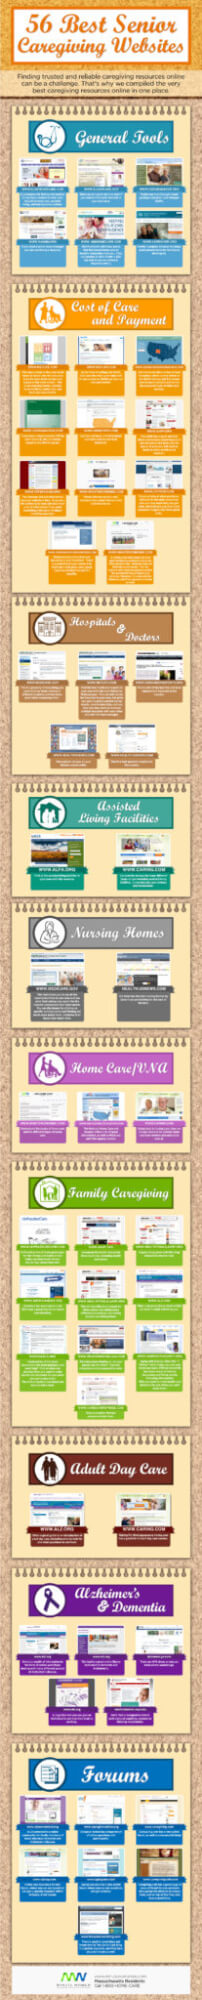 56-Best-Senior-Caregiving-Tools-Online